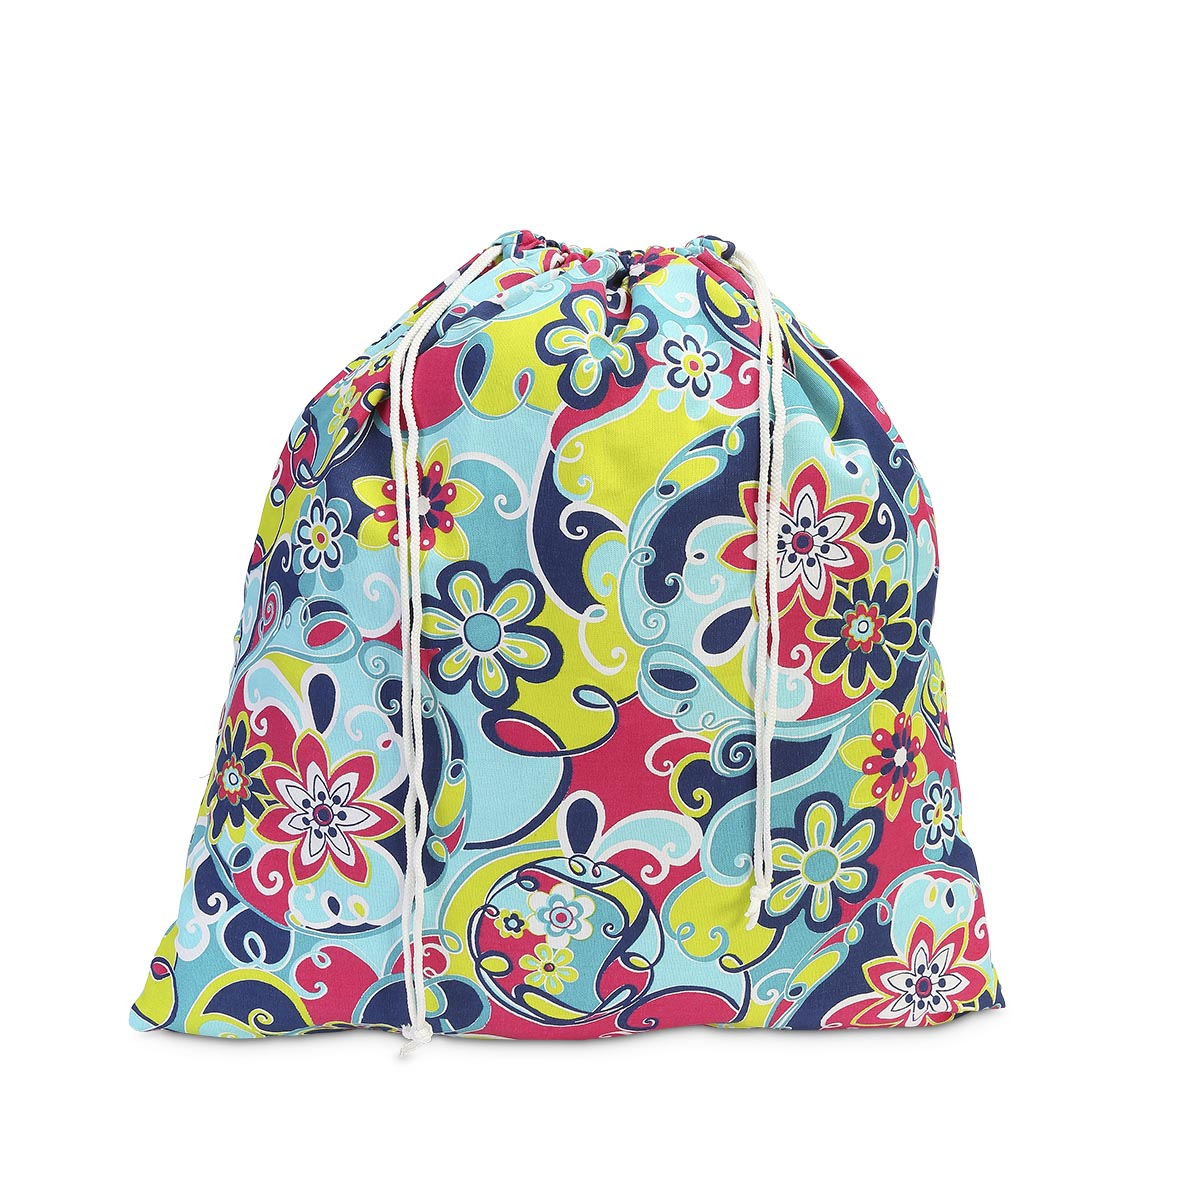 whimzee laundry bag